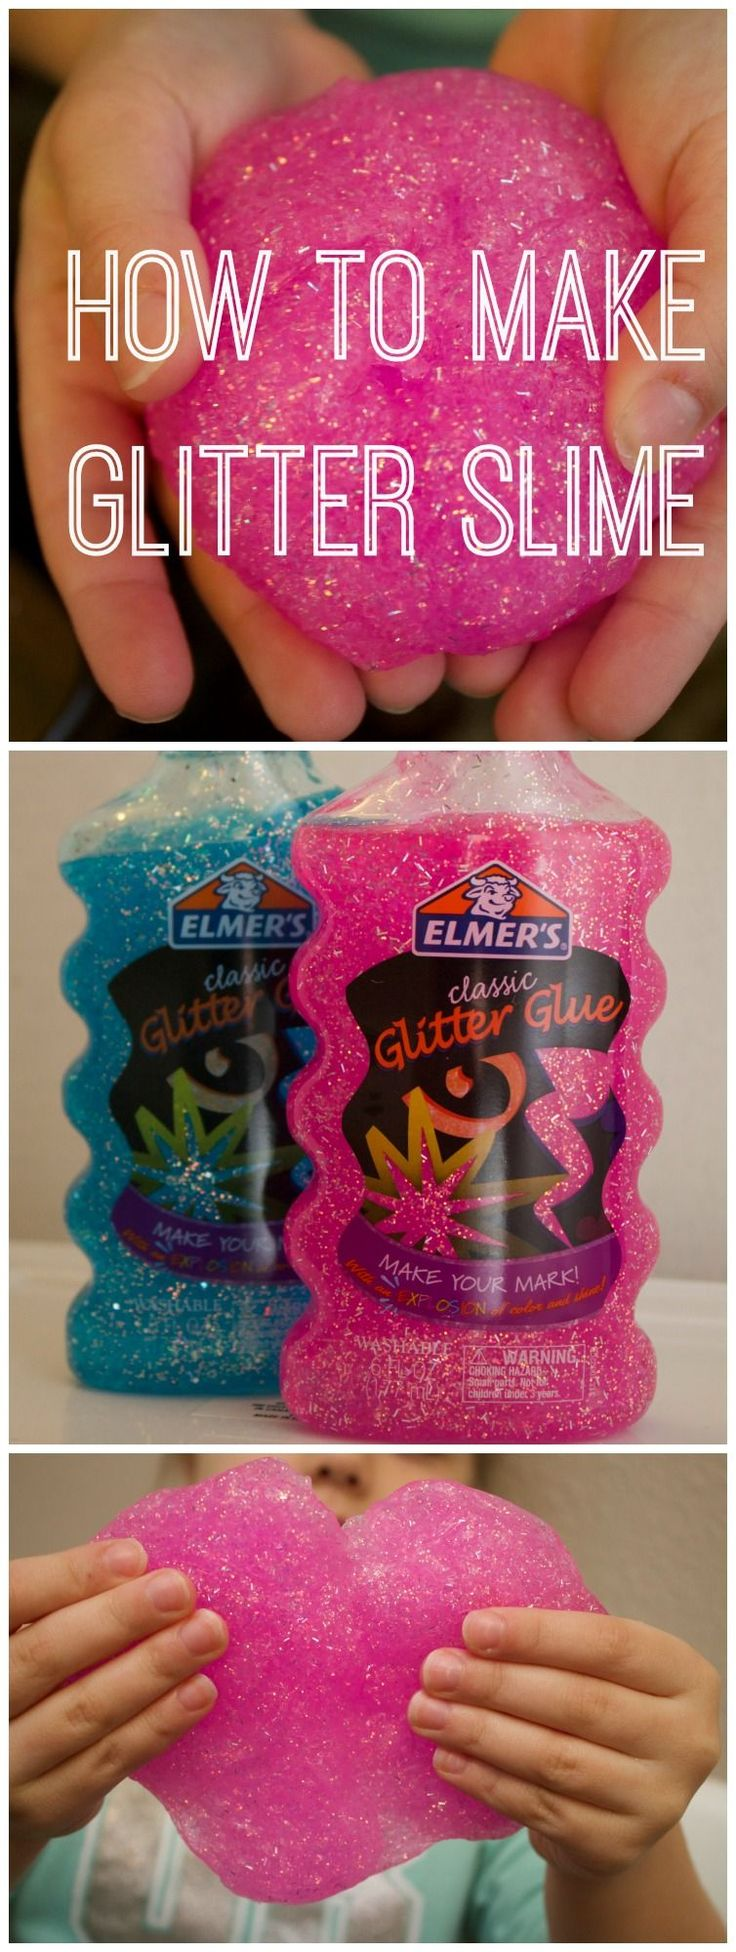 How To Make Glitter Slime With Only 3 Ingredients